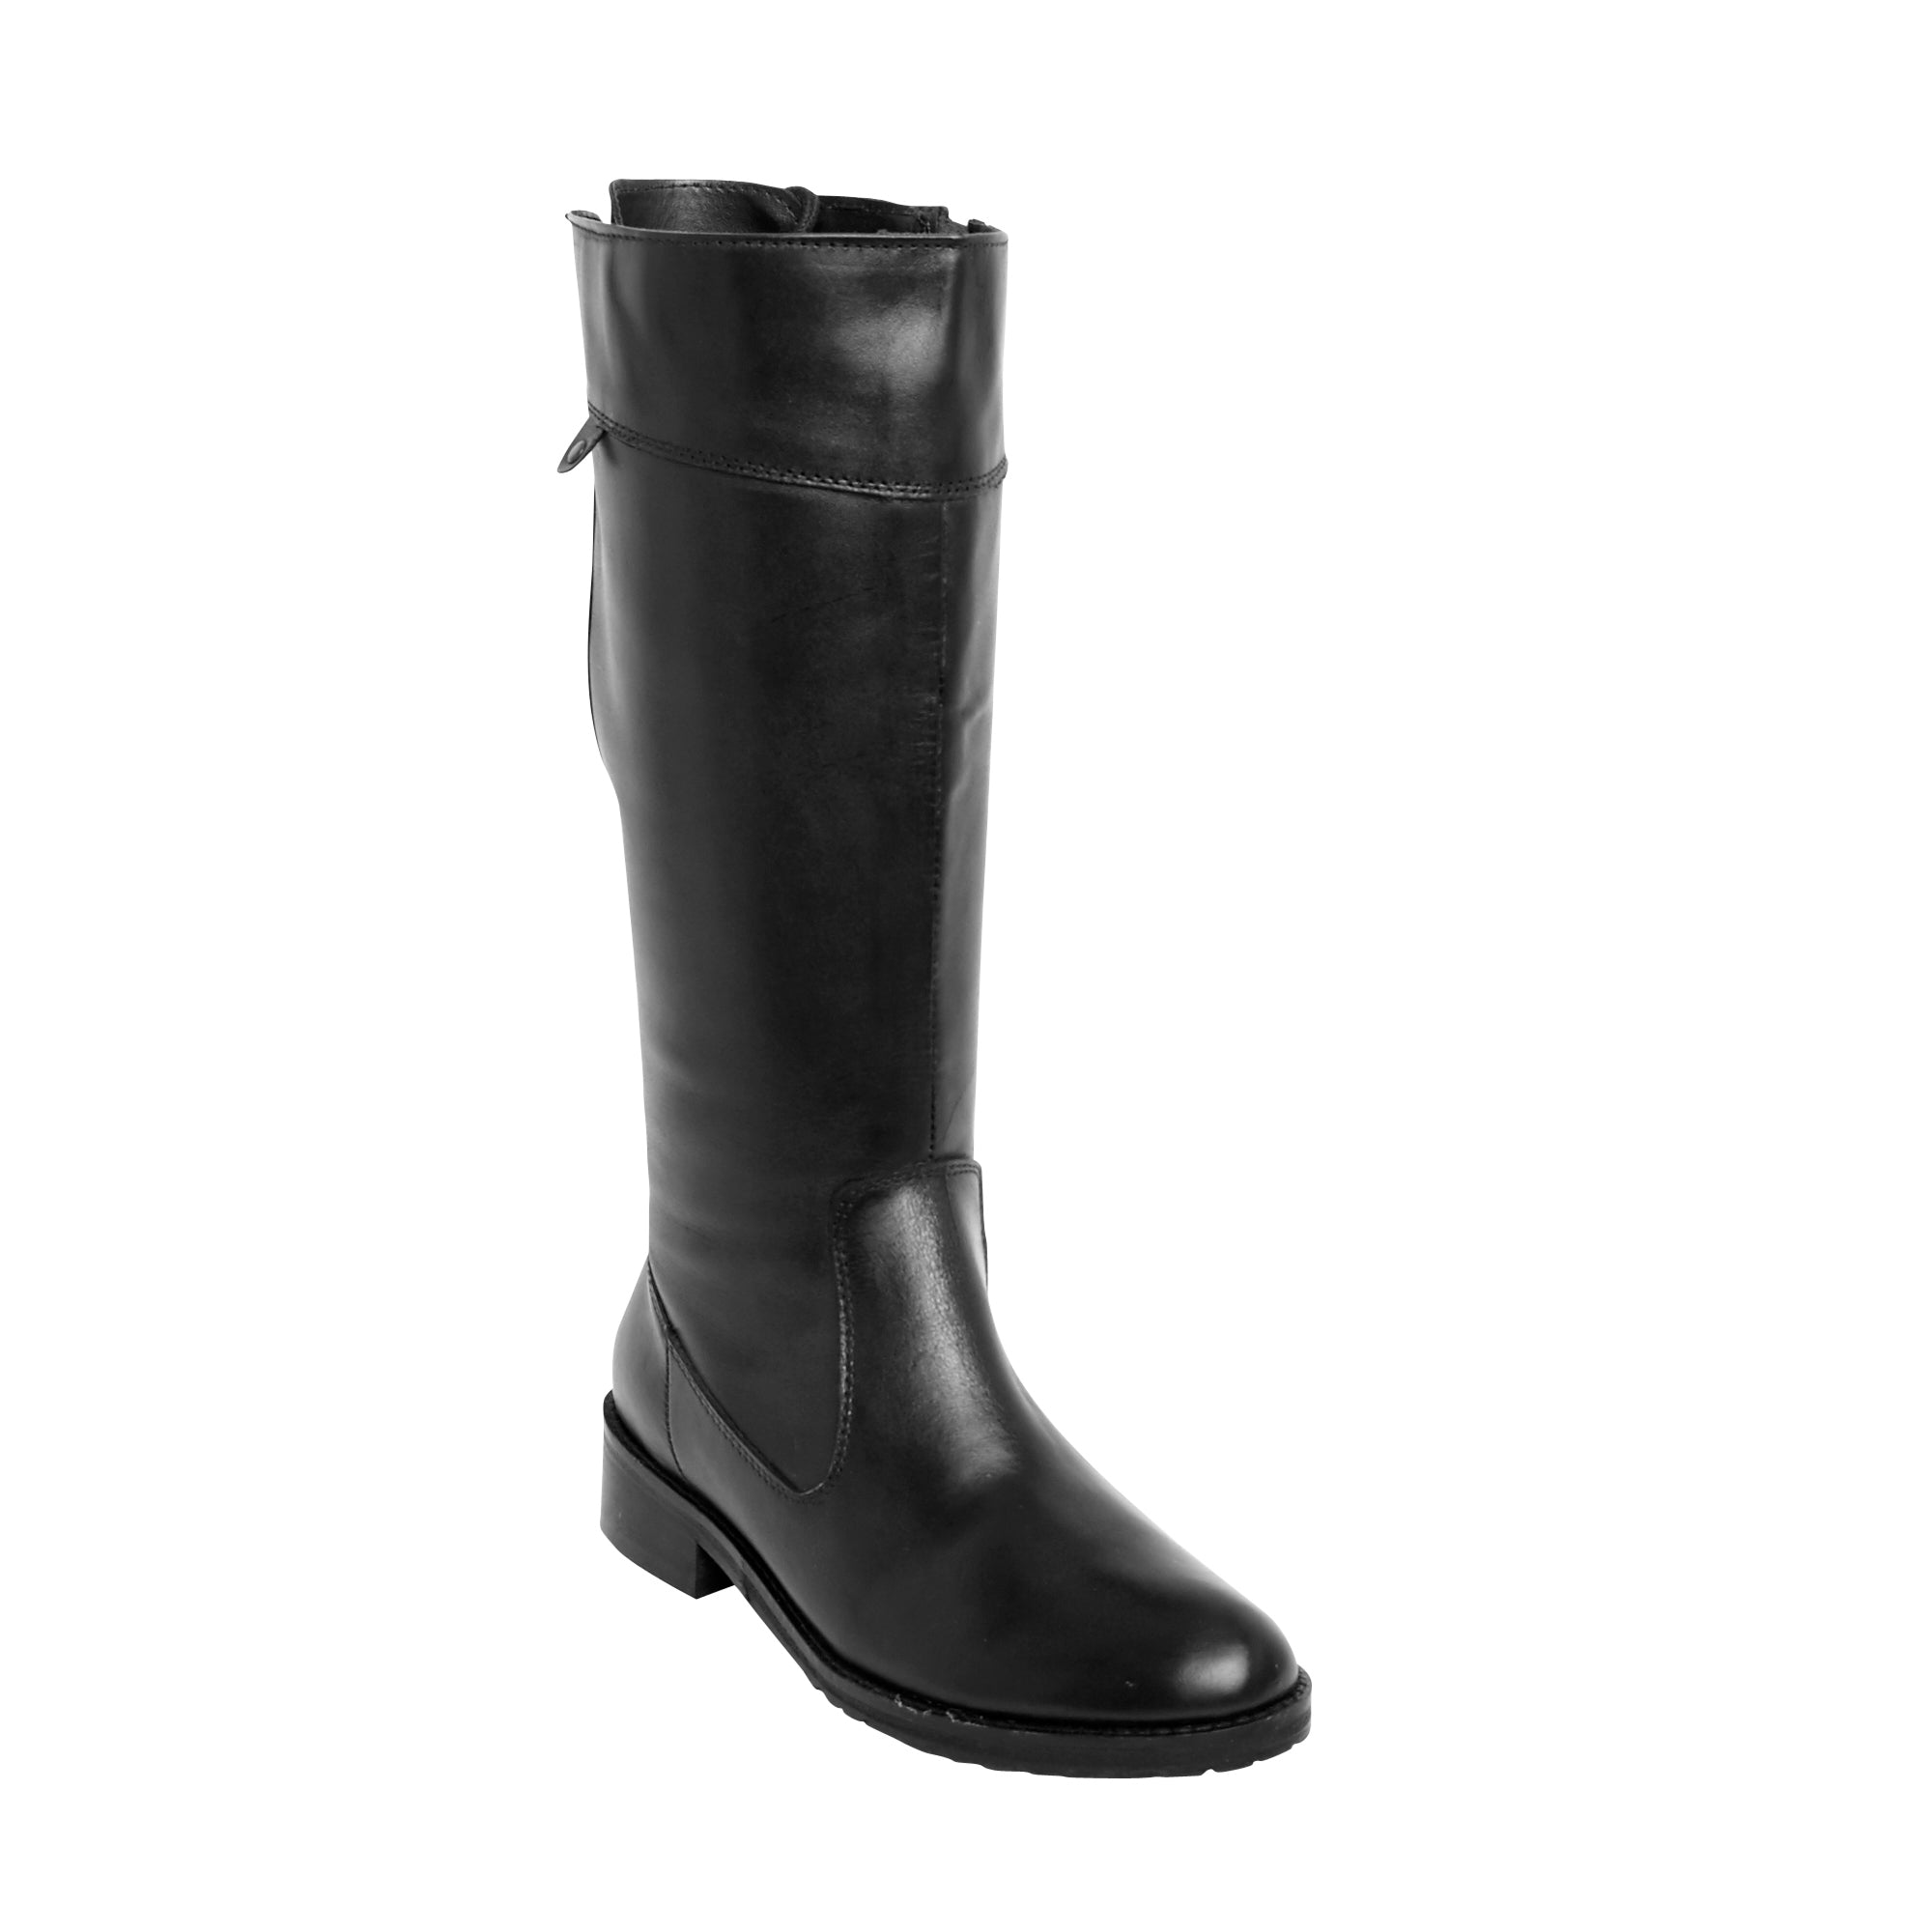 Ladies Long Boots SF-183 Black